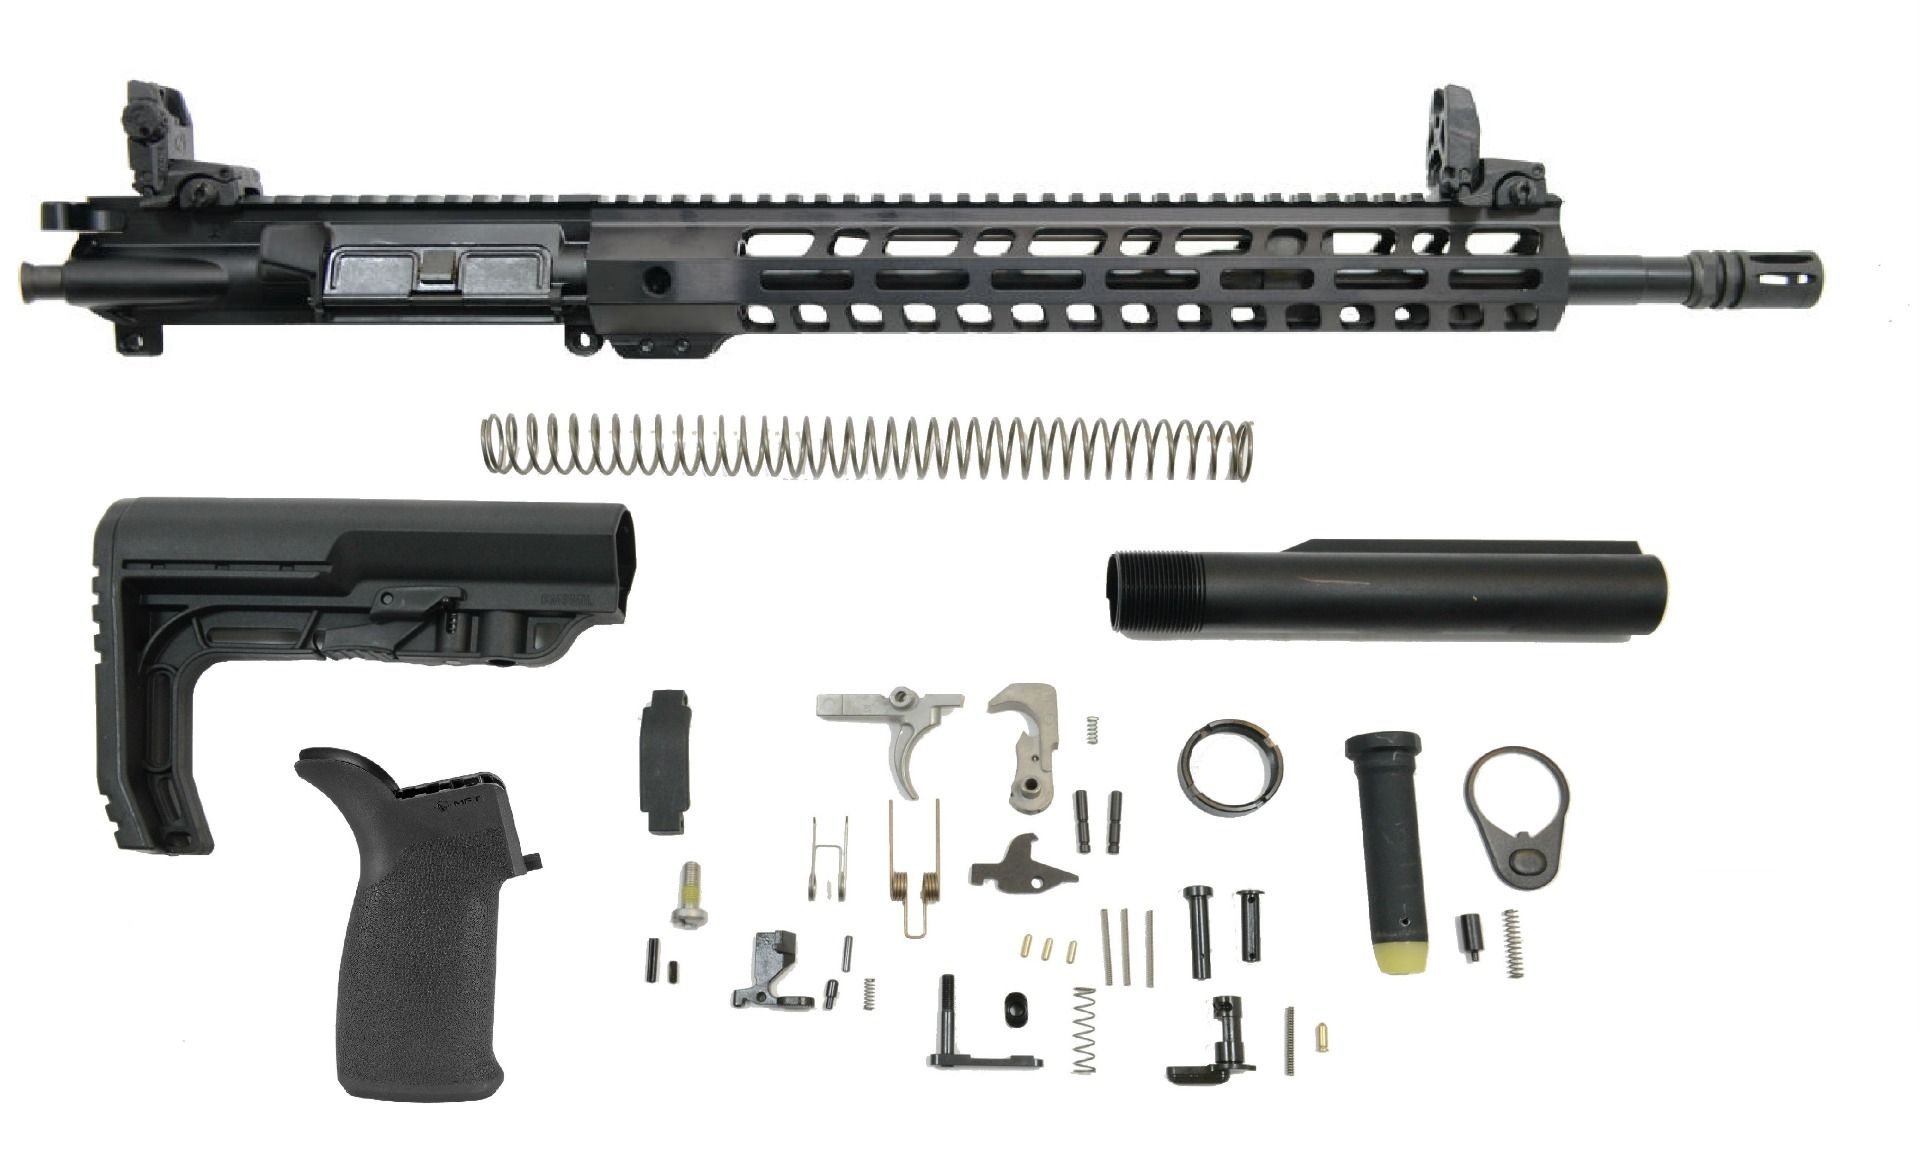 PSA 16″ CARBINE-LENGTH M4 5.56 NATO 1/7 NITRIDE 13.5″ LIGHTWEIGHT M-LOK MFT MINIMALIST EPT RIFLE KIT WITH MBUS SIGHT SET